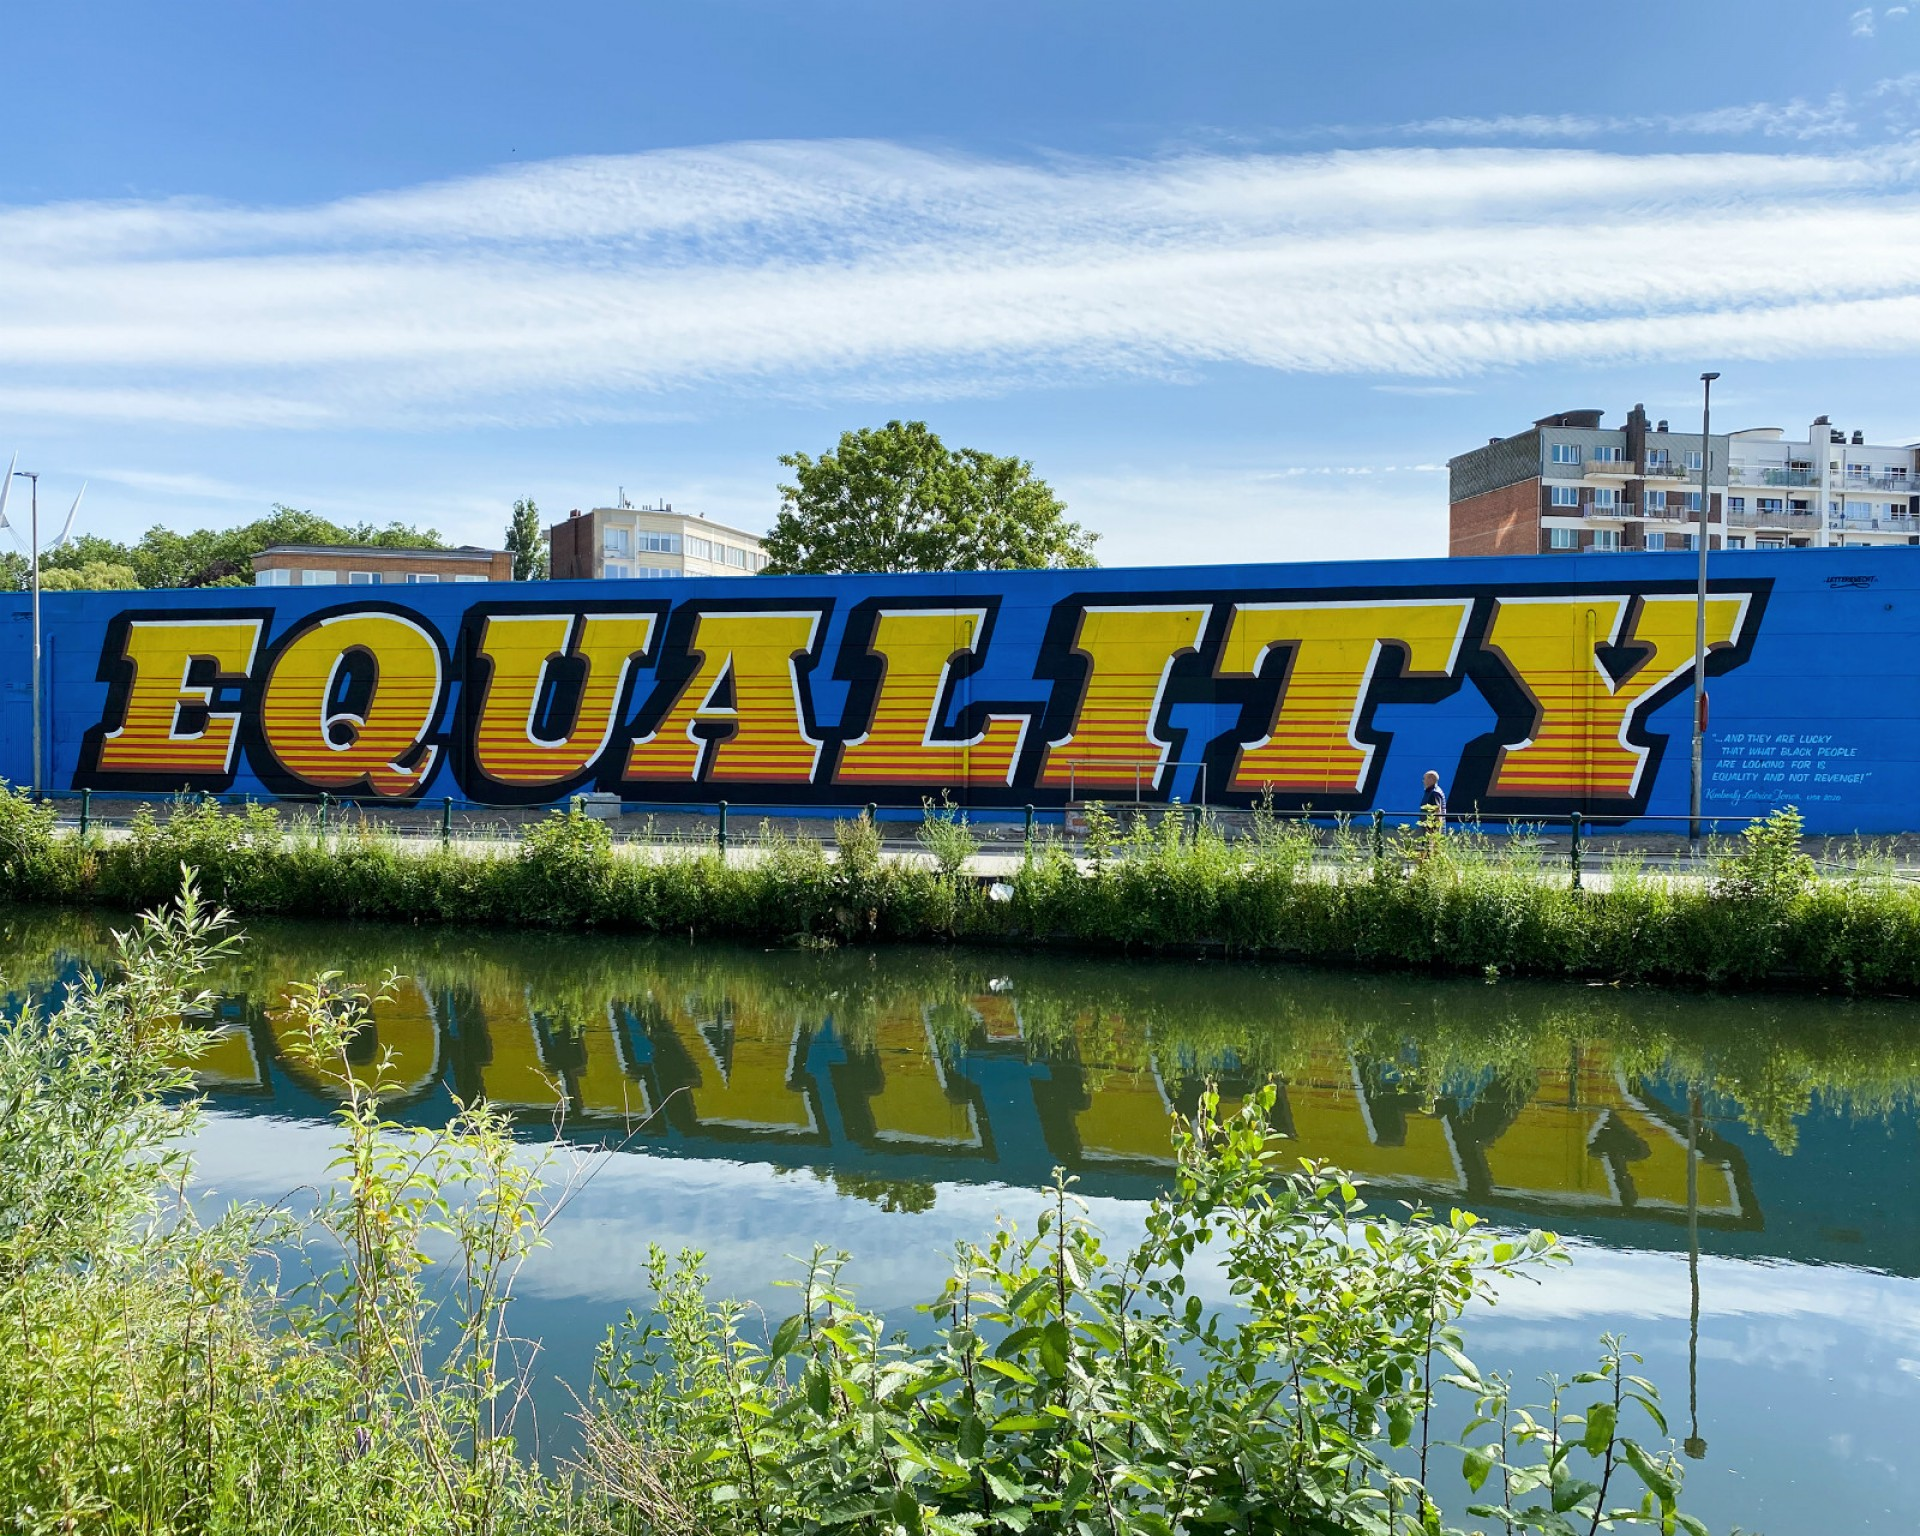 Equality by Letterknecht